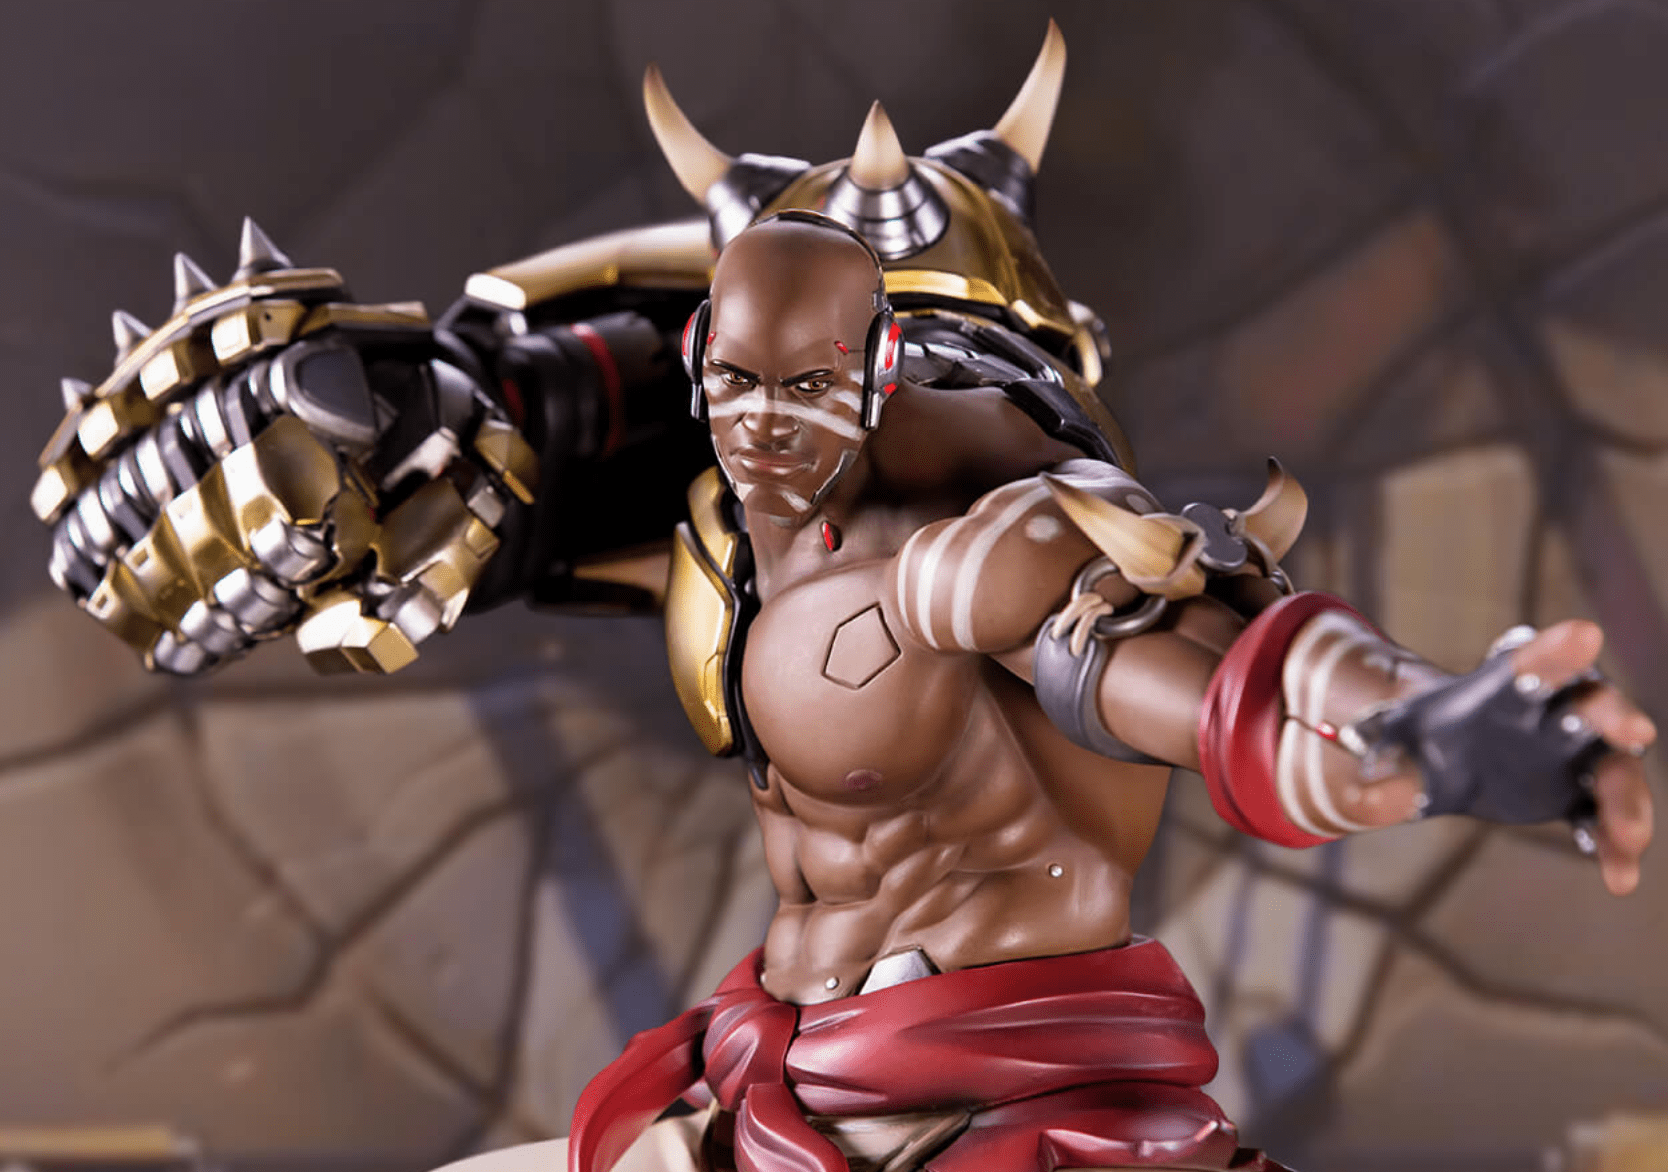 Blizzard announces new statue for Overwatch's Doomfist